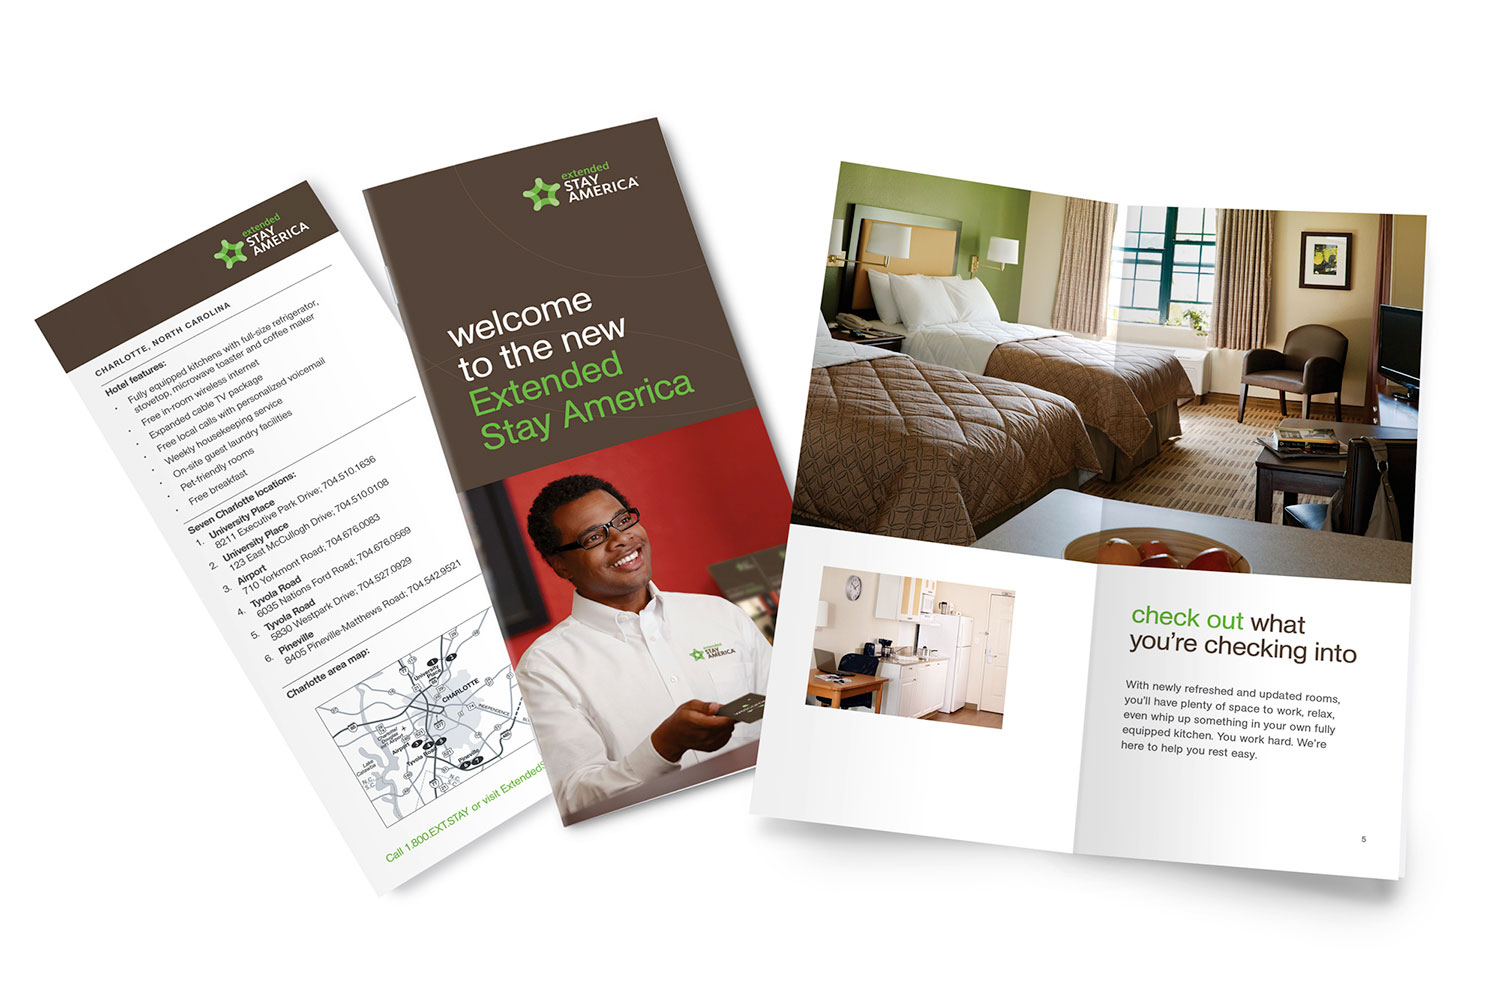 Extended Stay America property brochure